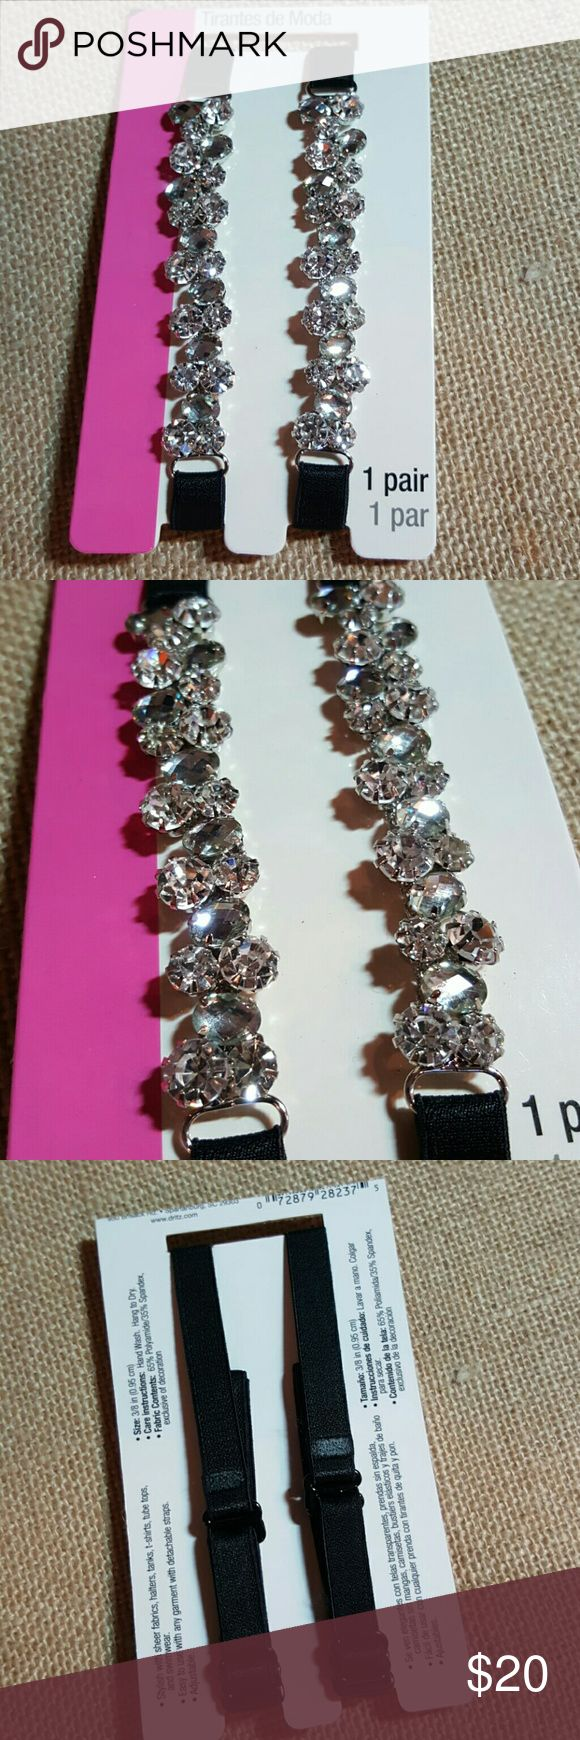 Diamond bra straps This is so beautiful. Use instead of regular  bra straps that are going to show. Accessories